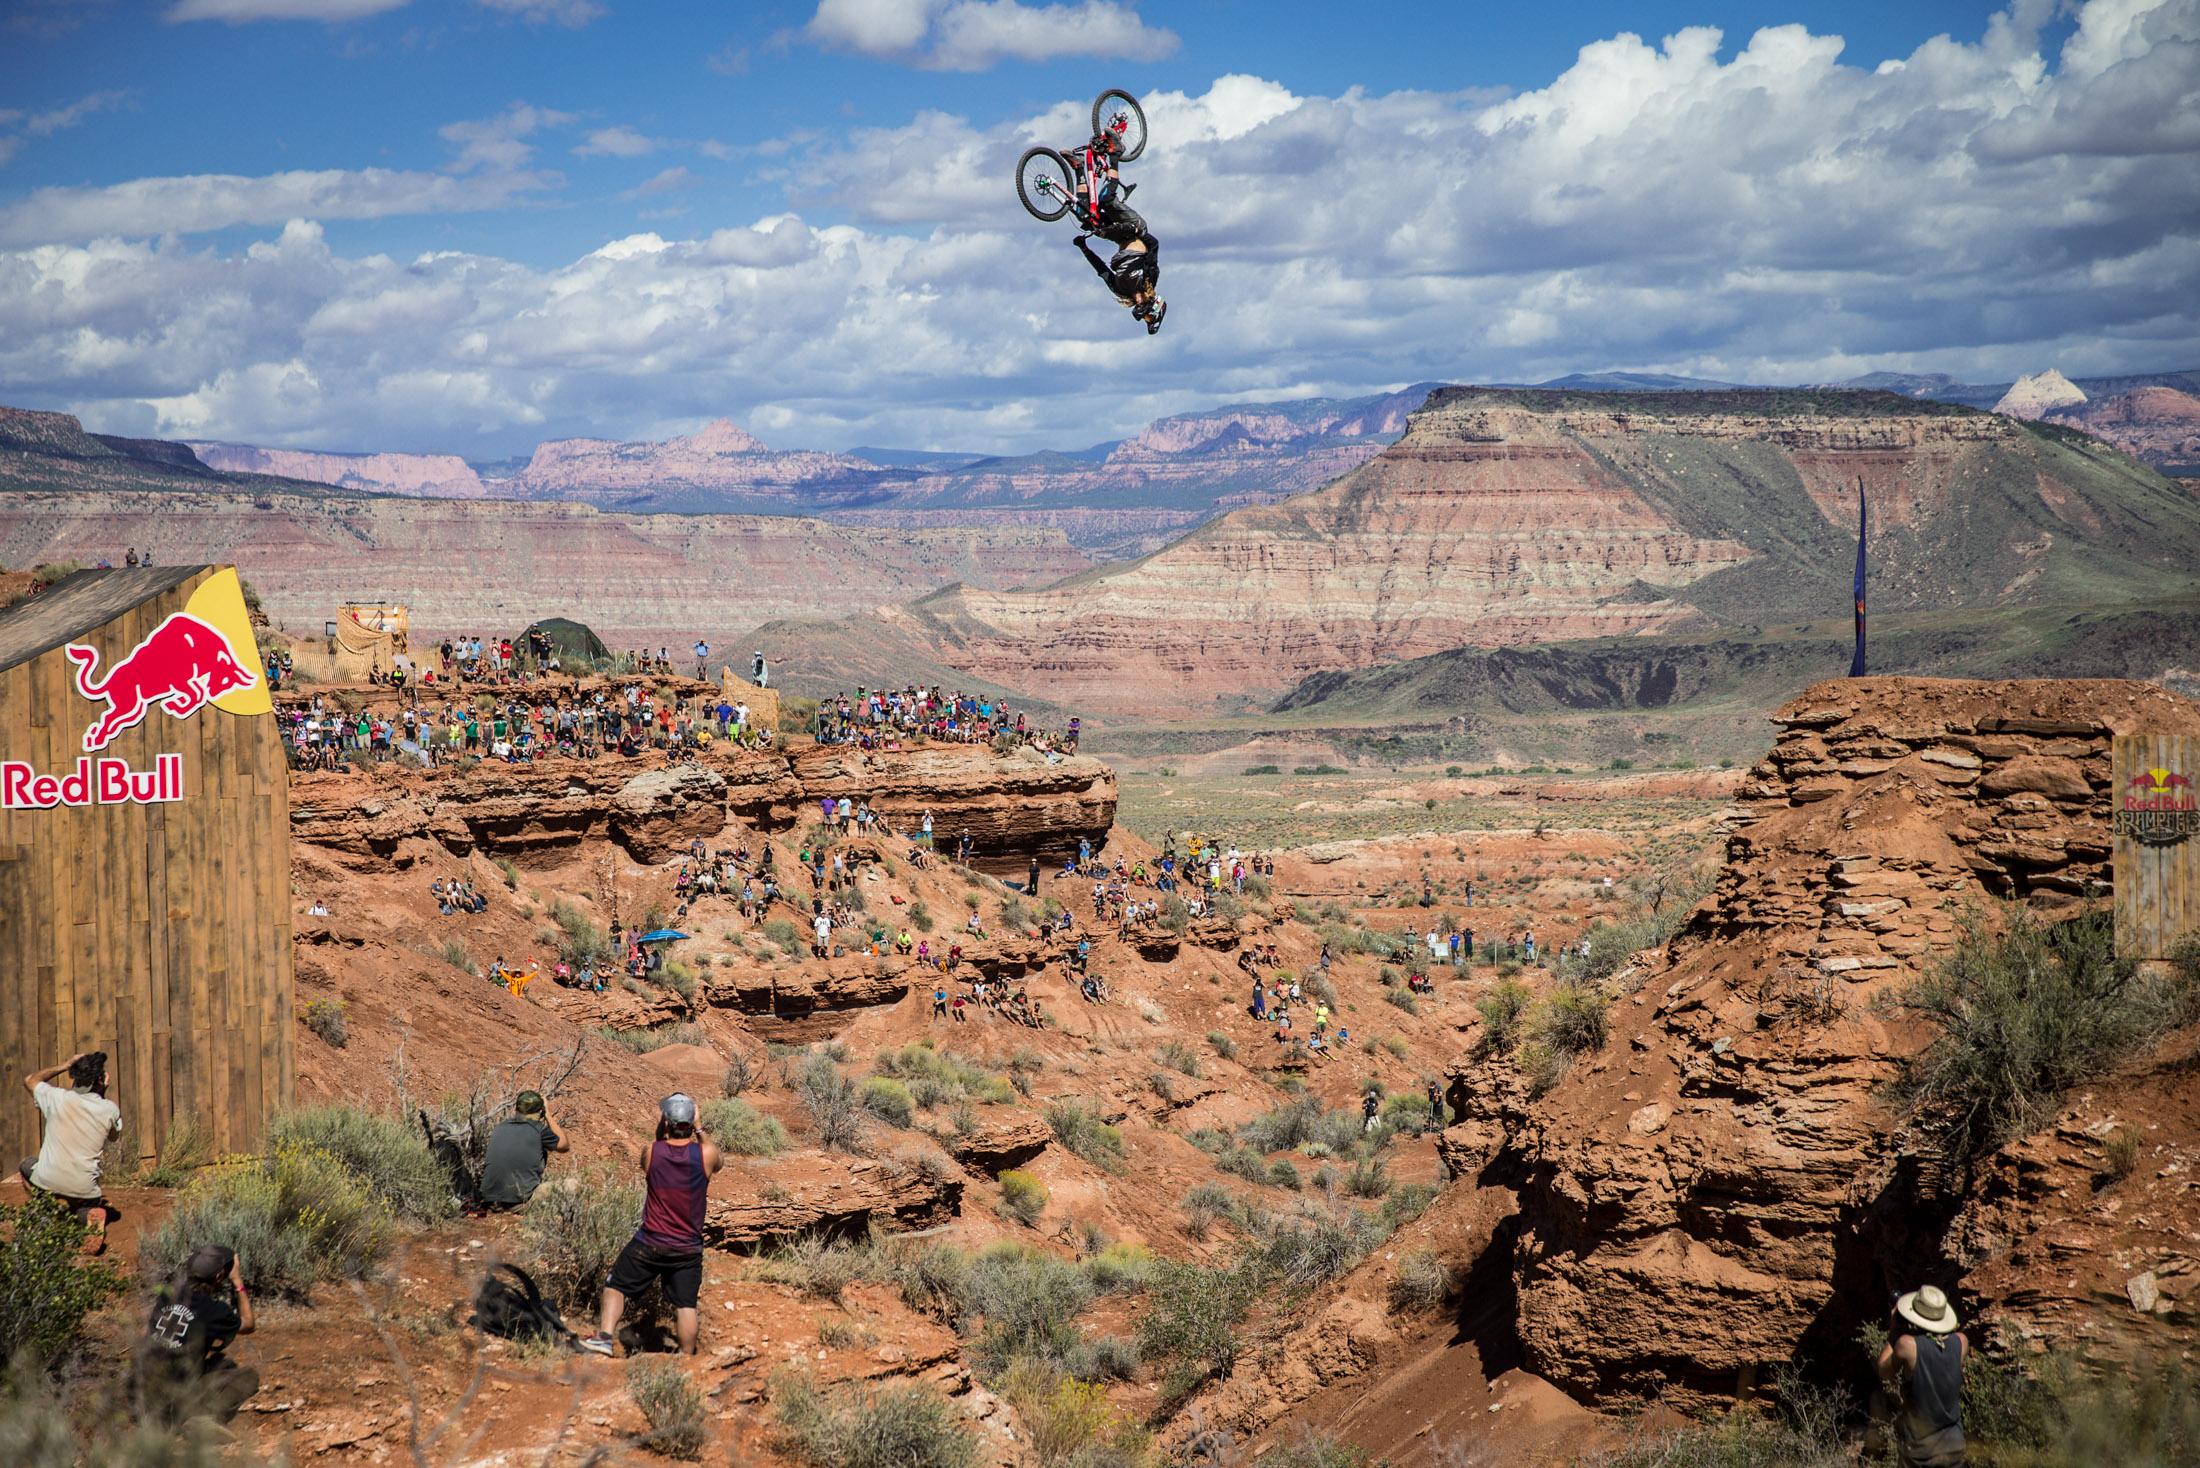 Kelly McGarry rides at finals during Red Bull Rampage in Virgin, Utah. Photo Christian Pondella